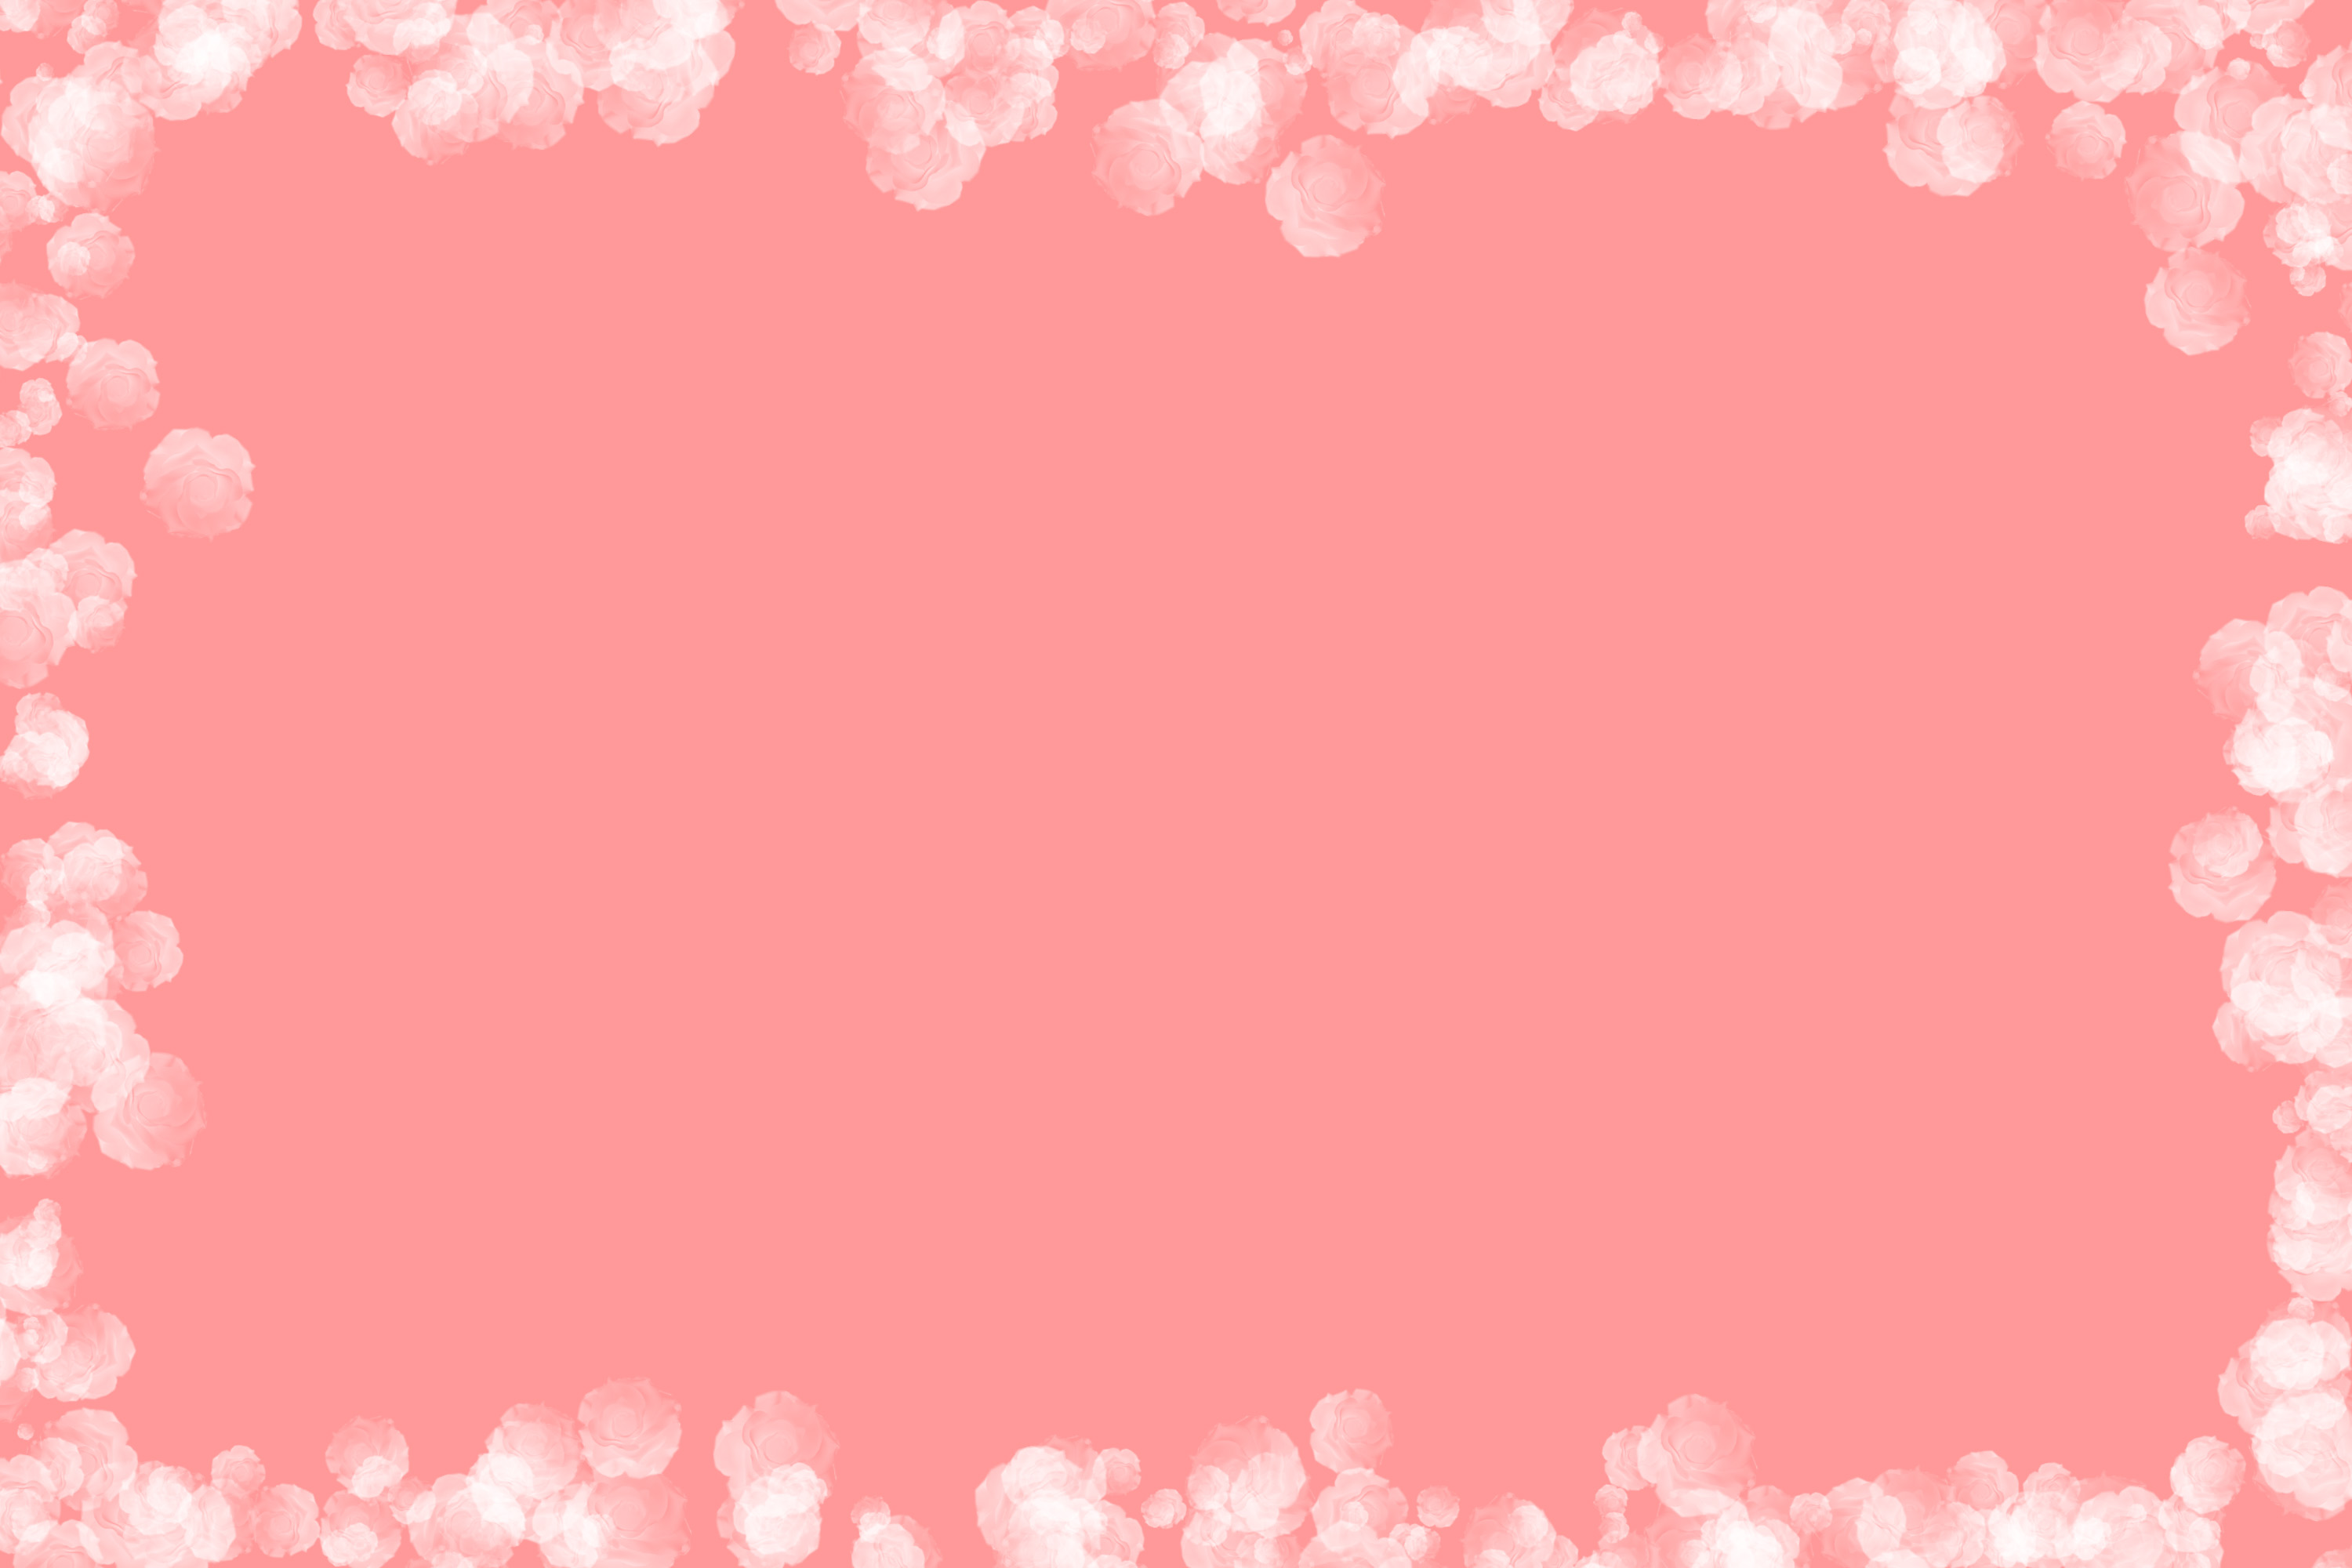 rose frame pink | Free backgrounds and textures | Cr103.com